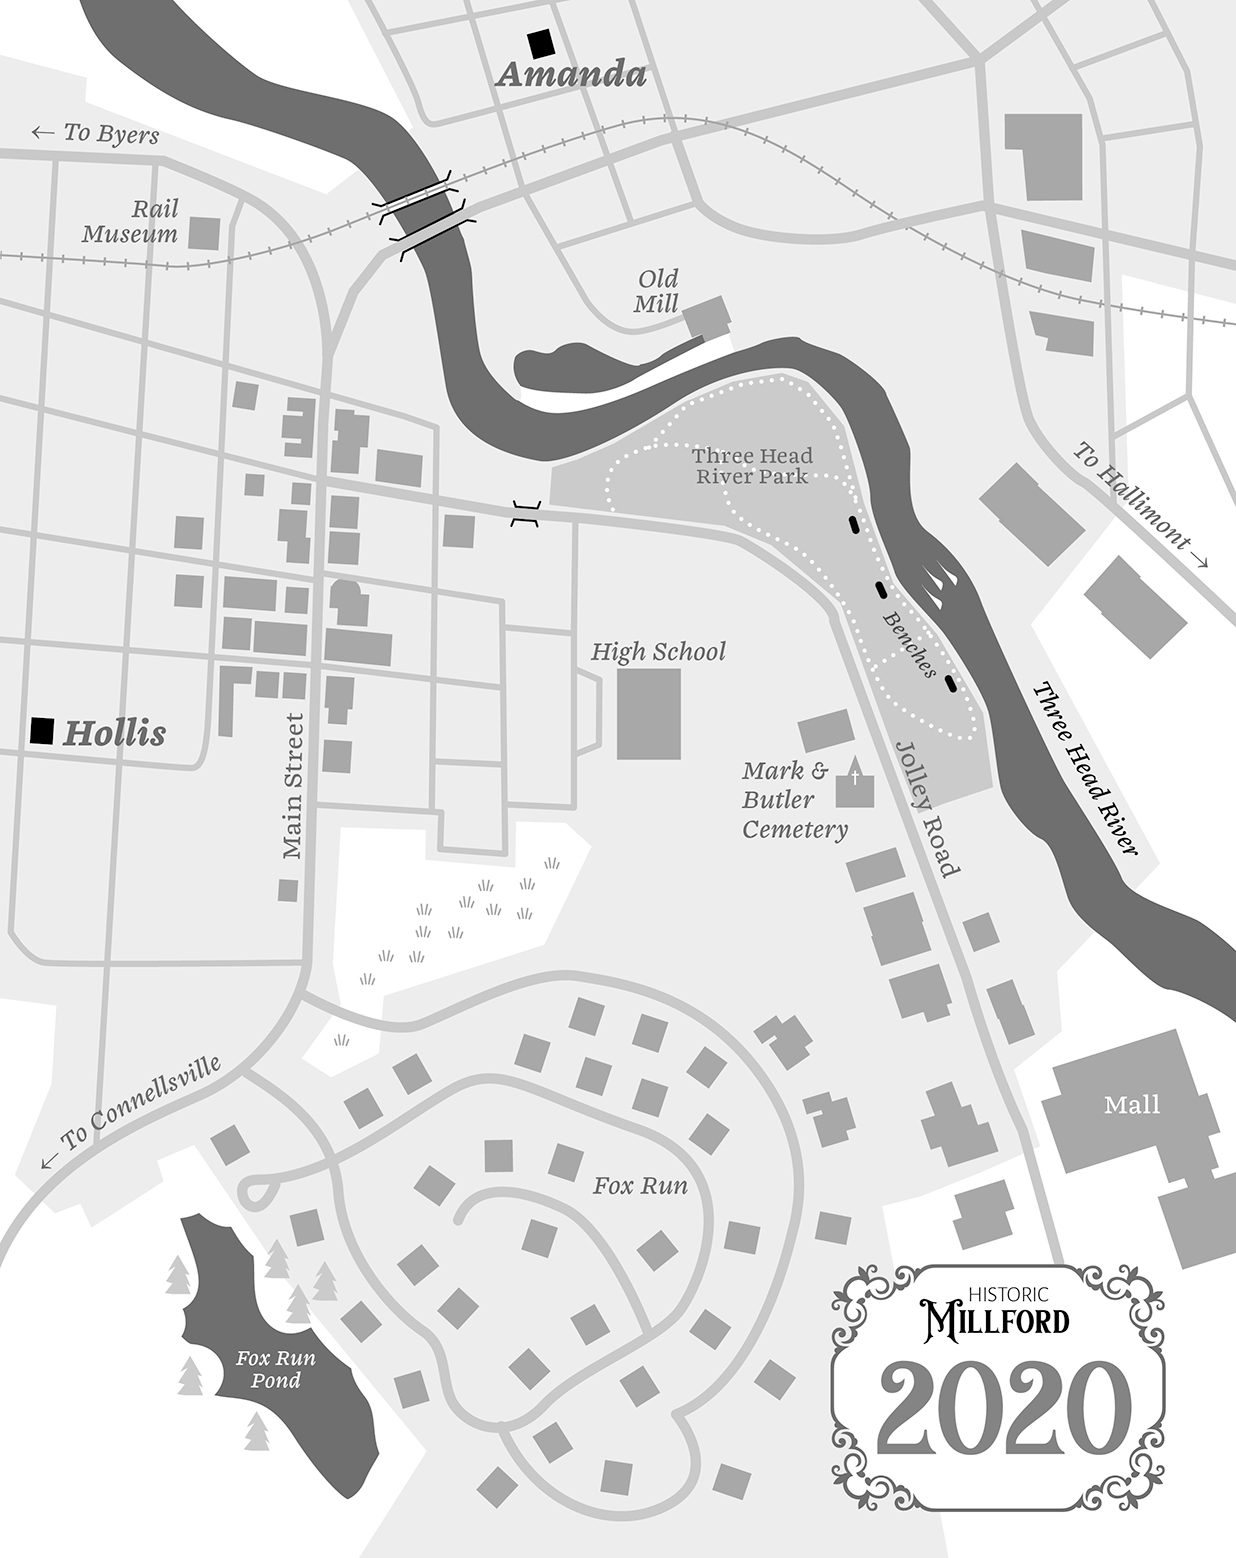 Map of fictitious town in 2020